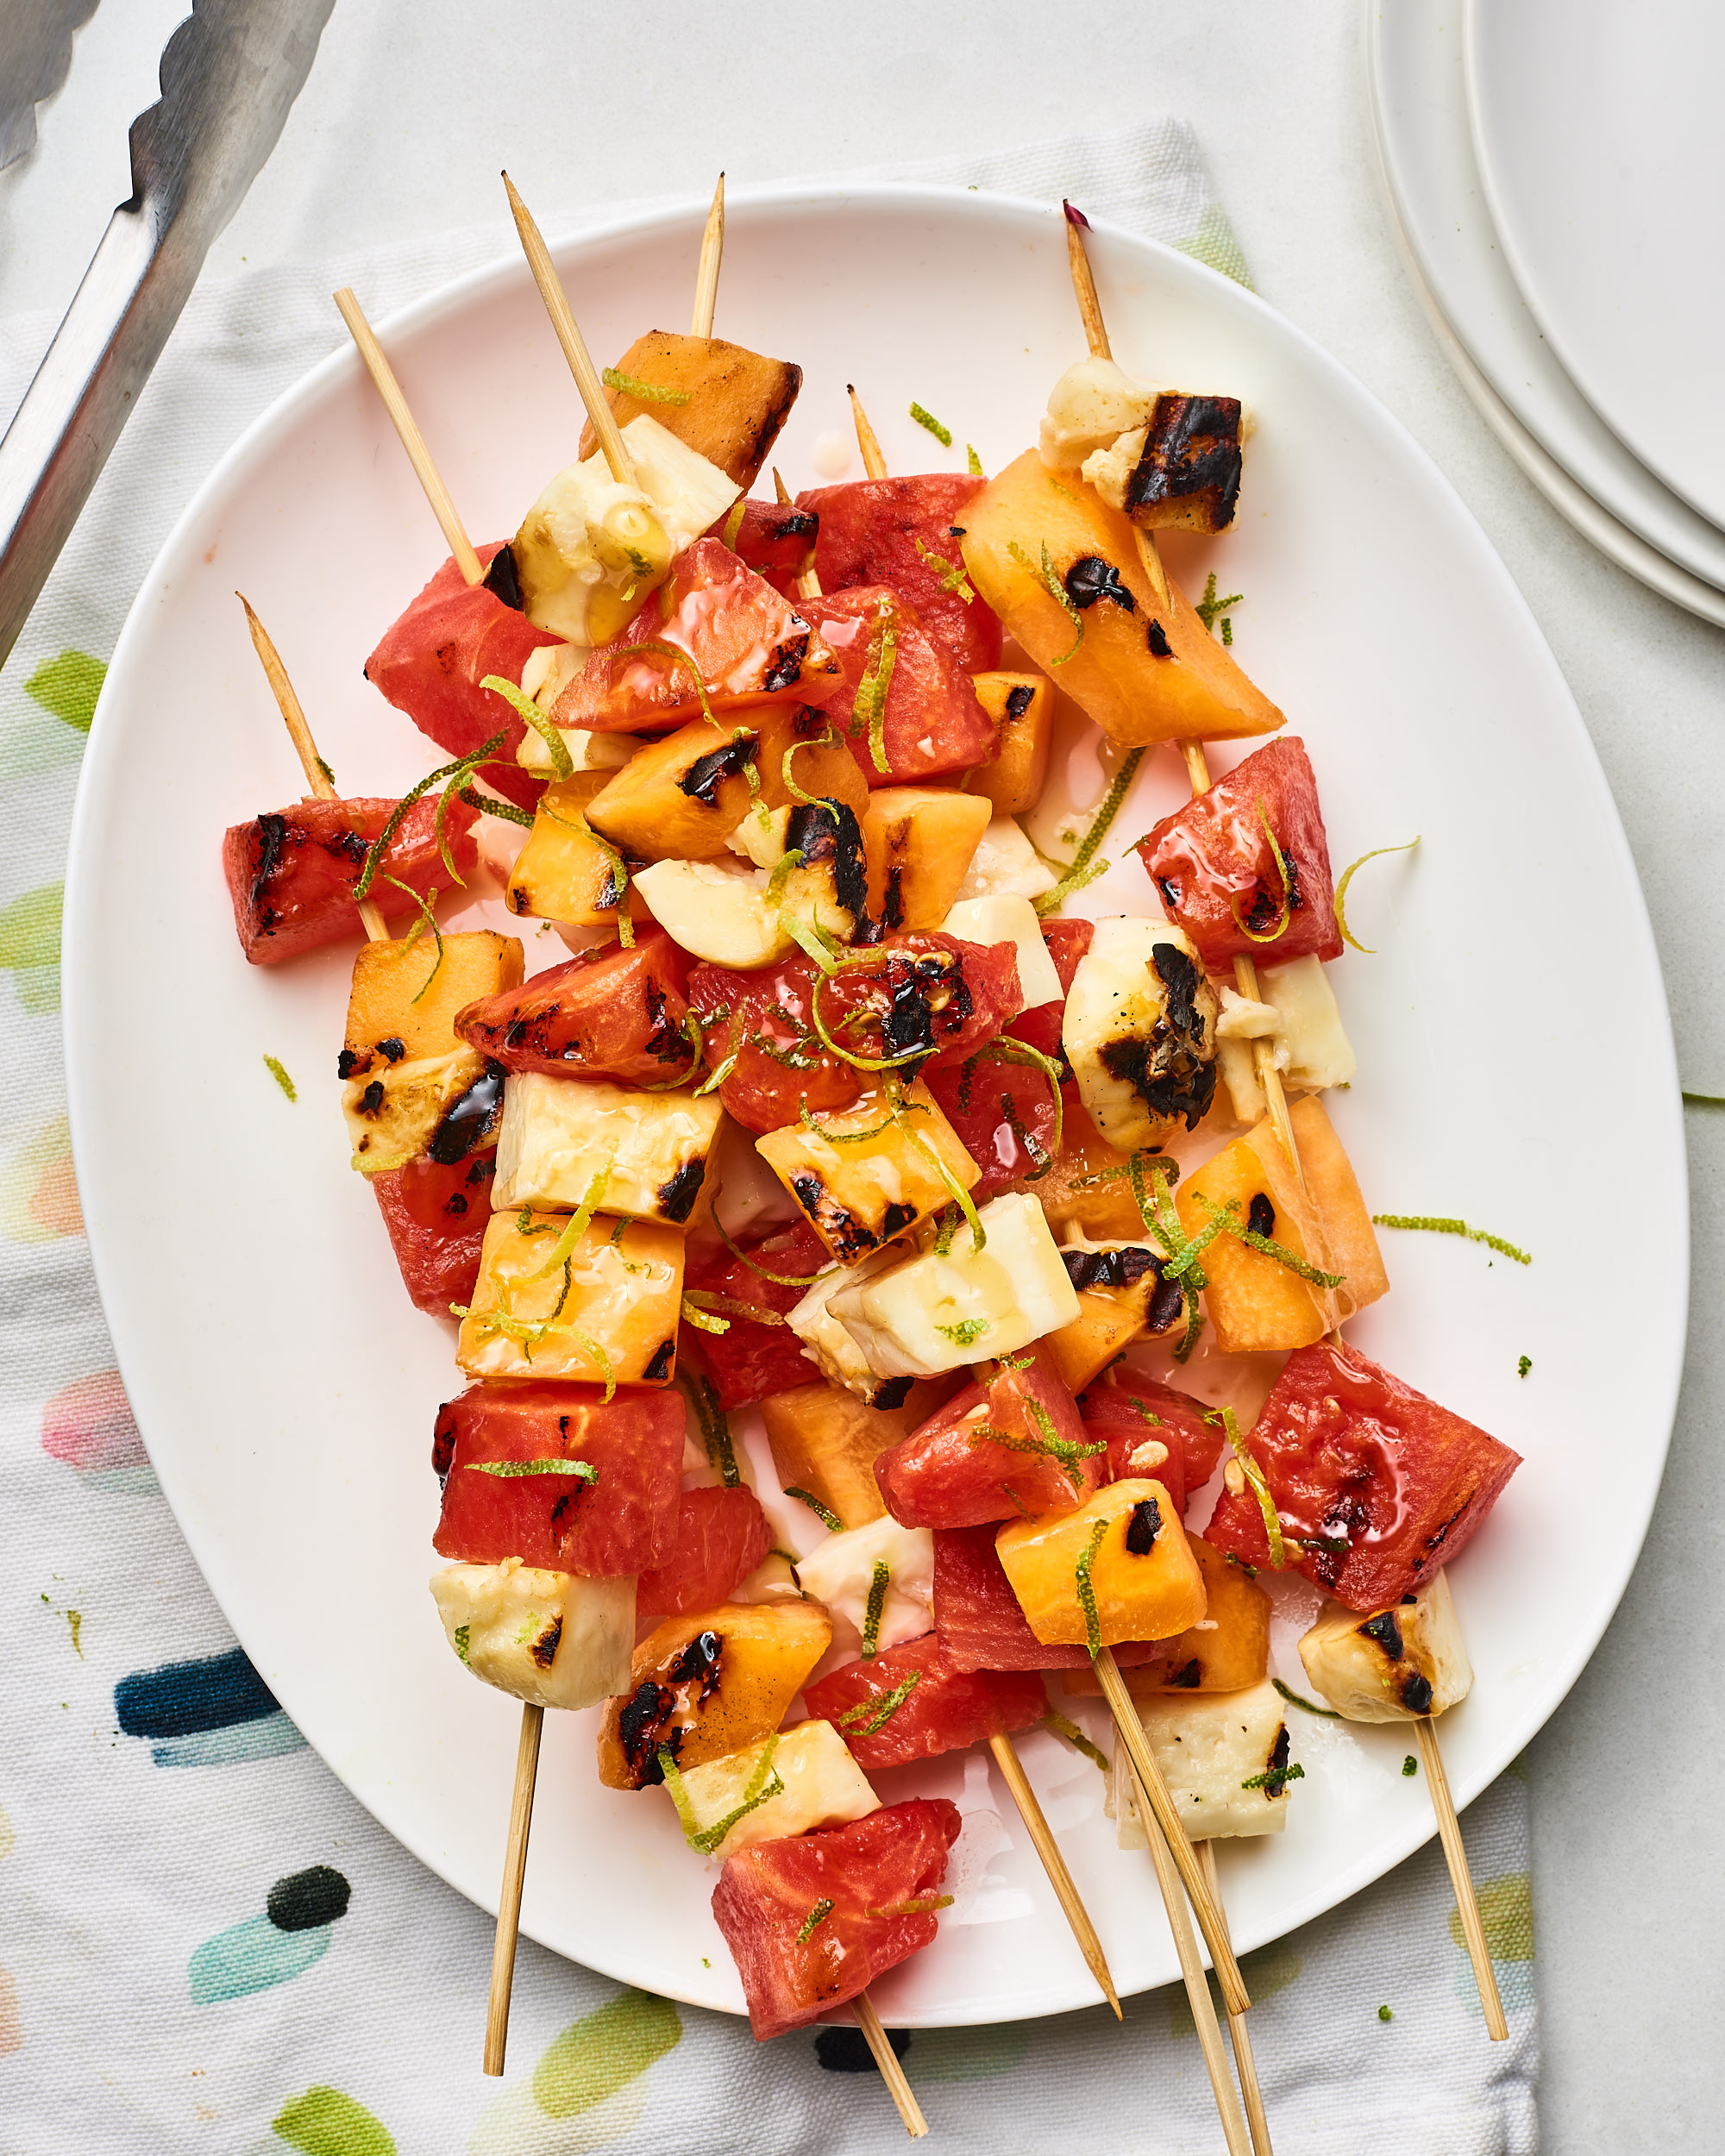 Recipe: Halloumi & Melon Skewers with Honey-Lime Glaze